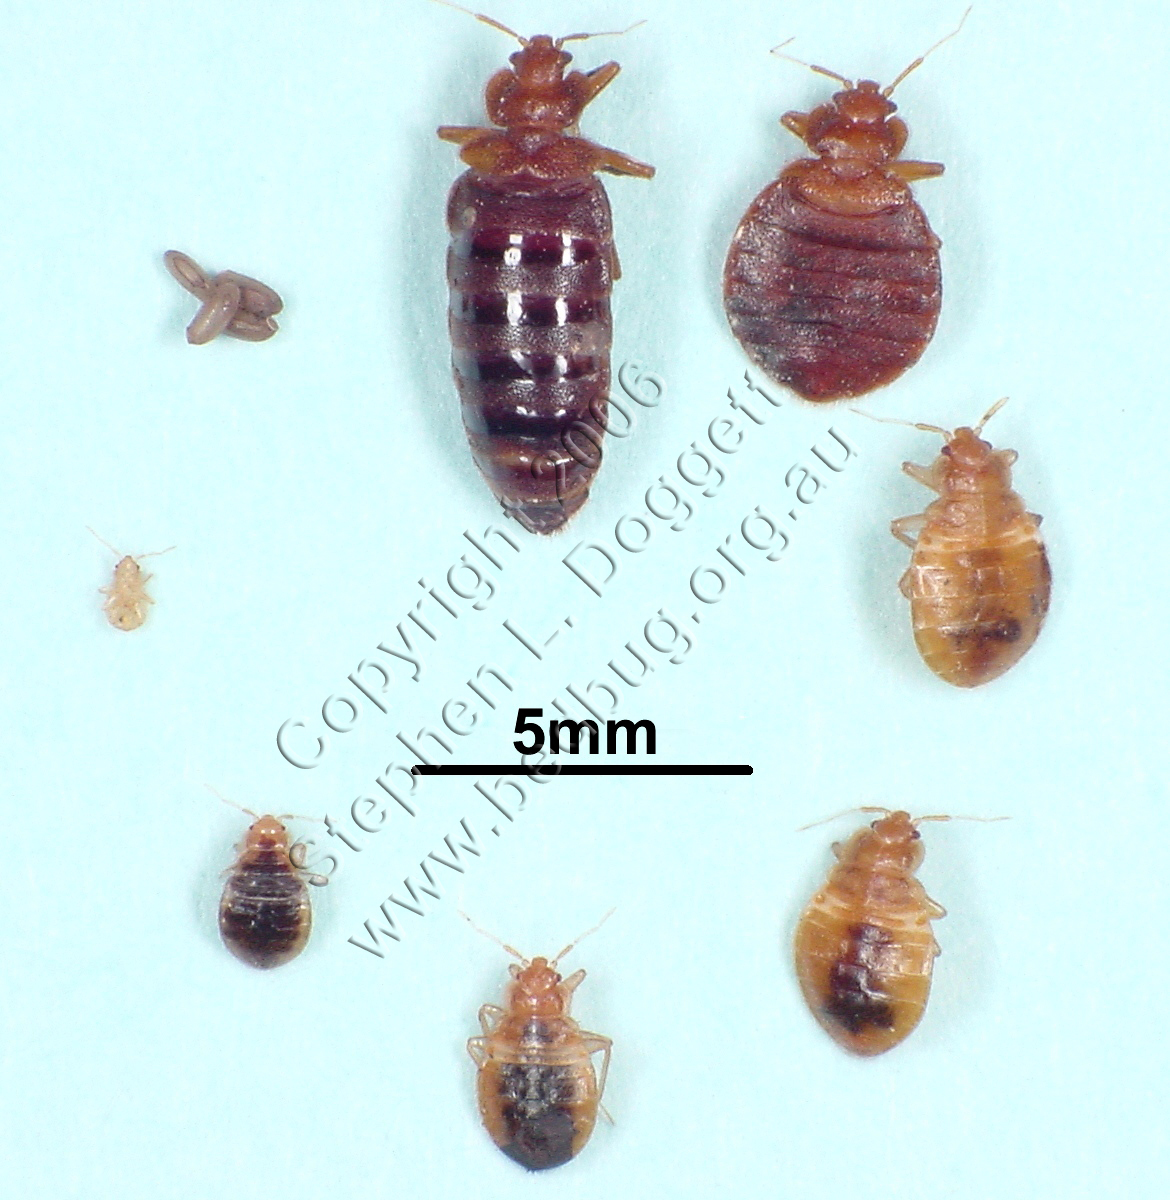 http://bedbugger.files.wordpress.com/2006/10/common_bed_bug_lifecycle.jpg